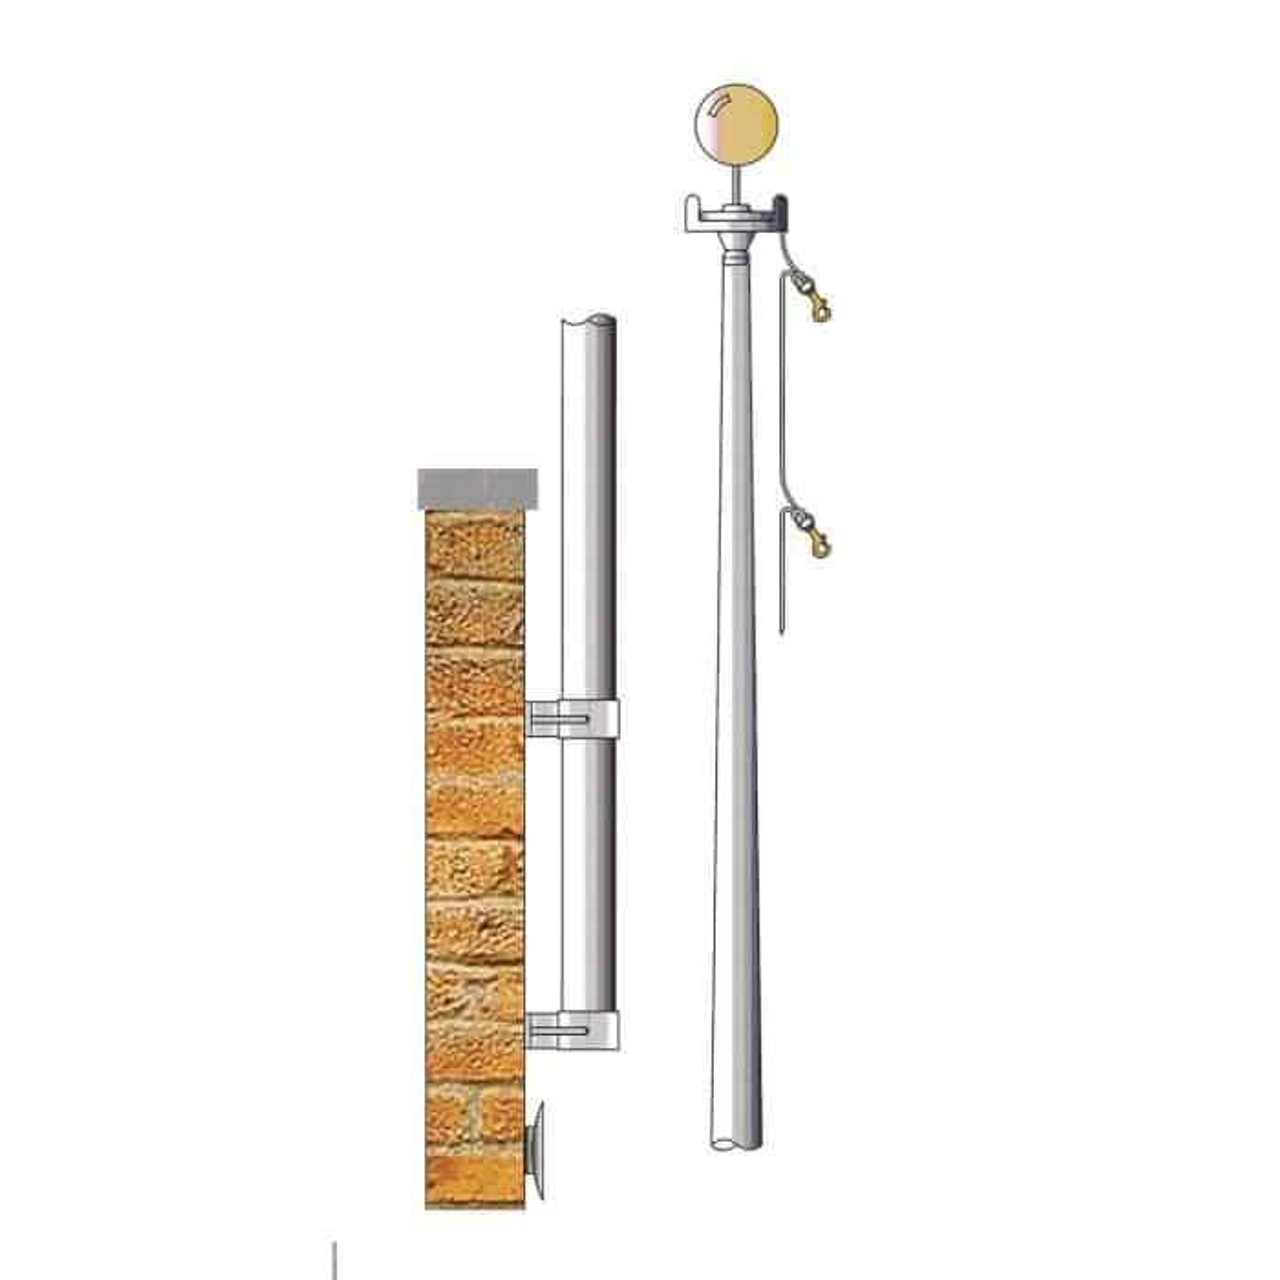 23 Vertical Wall Mounted Flagpole LVW23